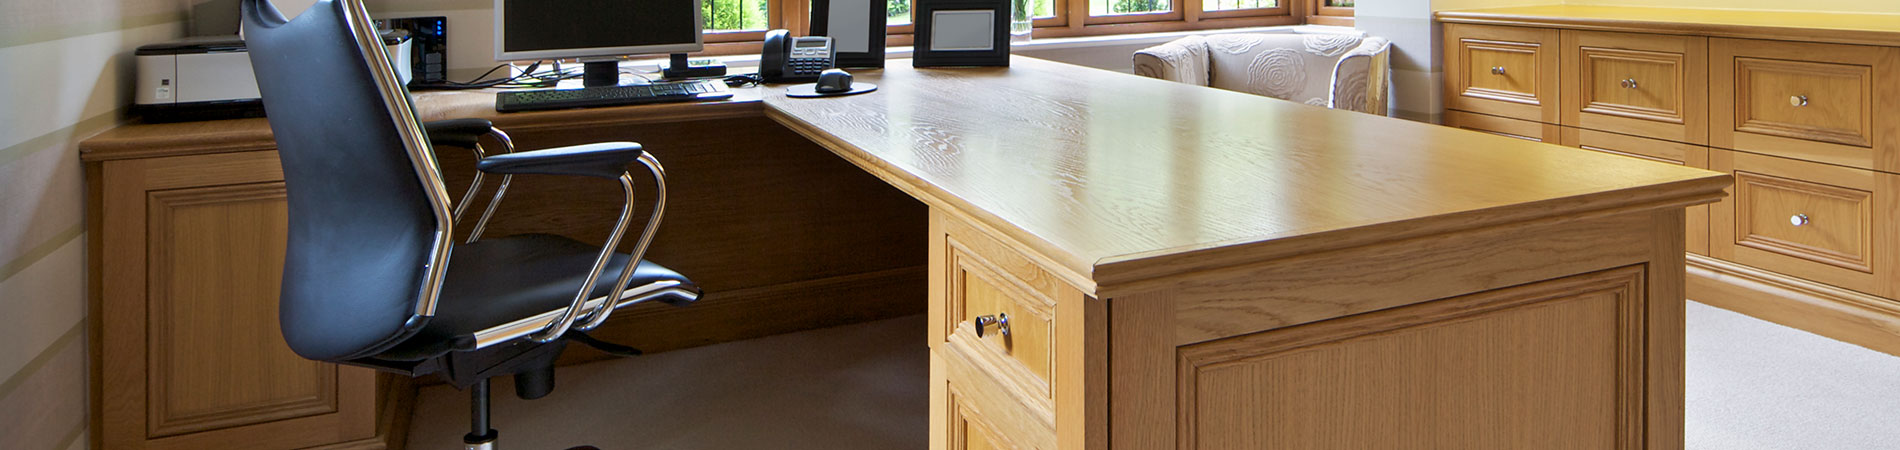 Home Offices | Home Office Project Photo Gallery | View Our Custom  Cabinetry Projects | McChesney Cabinets | Elk River, MN